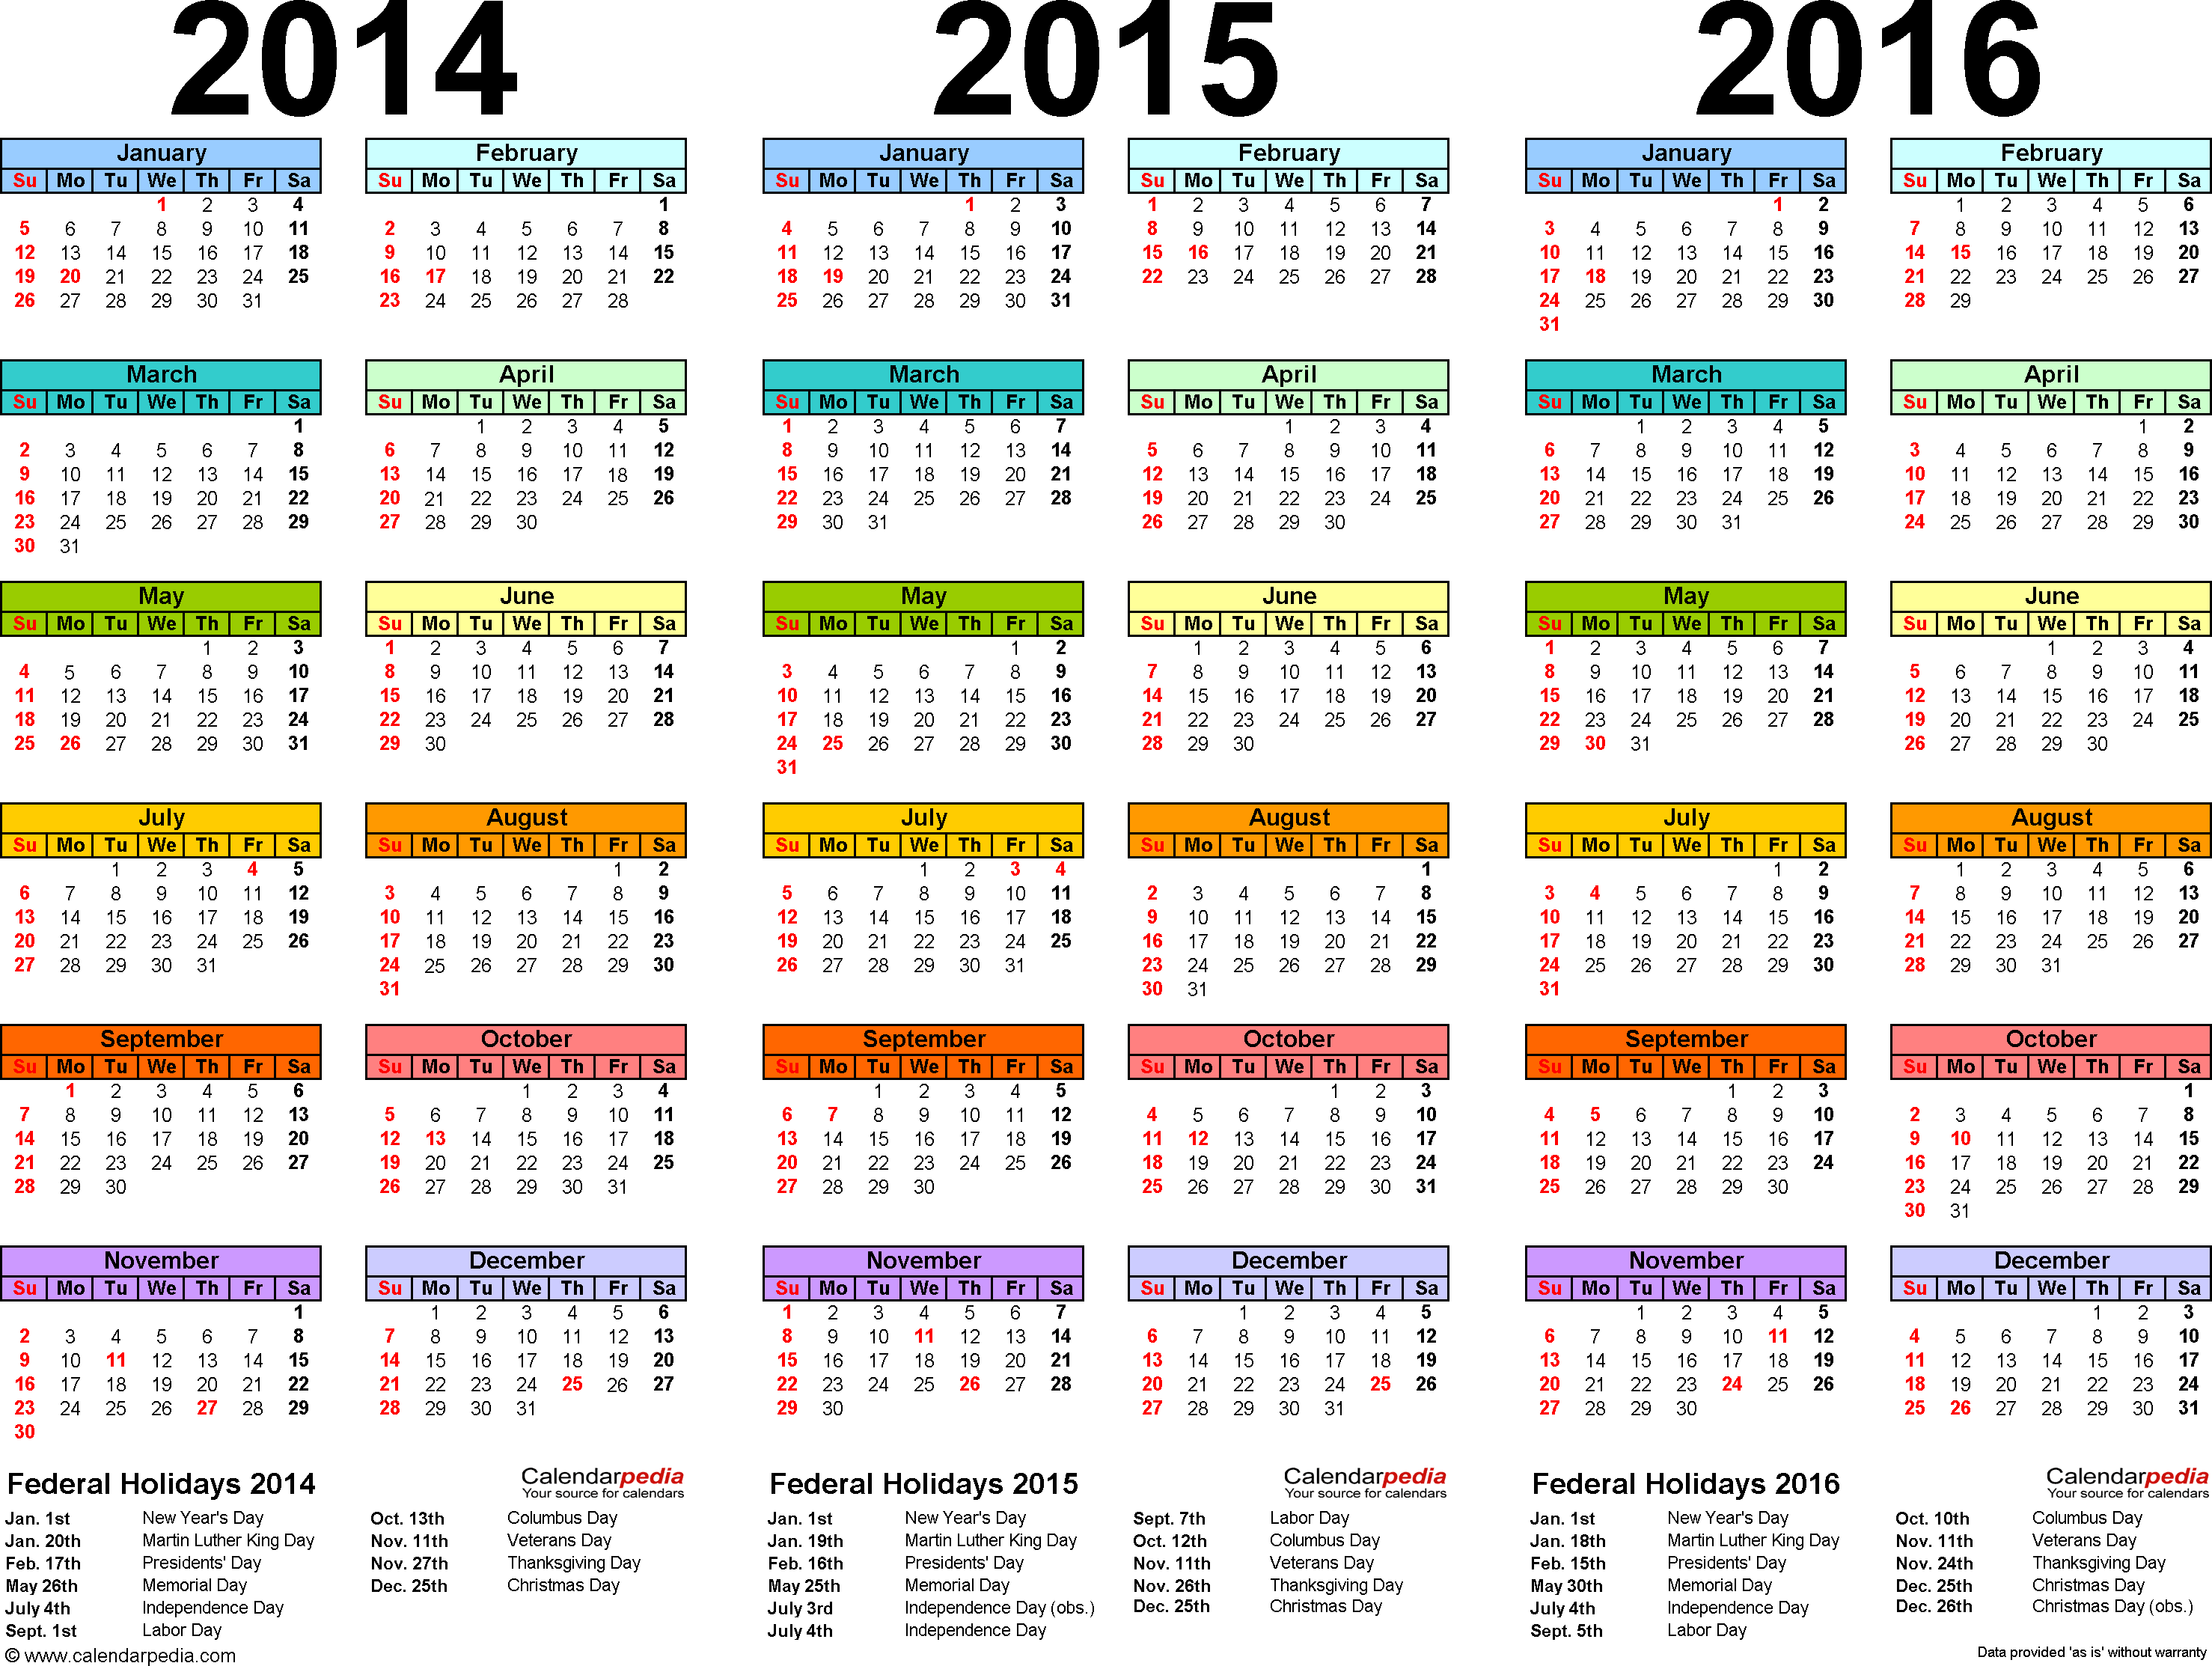 Calendar 2015 2016 Printable why capcom bet 360, and not ps3 or wii system wars gamespot